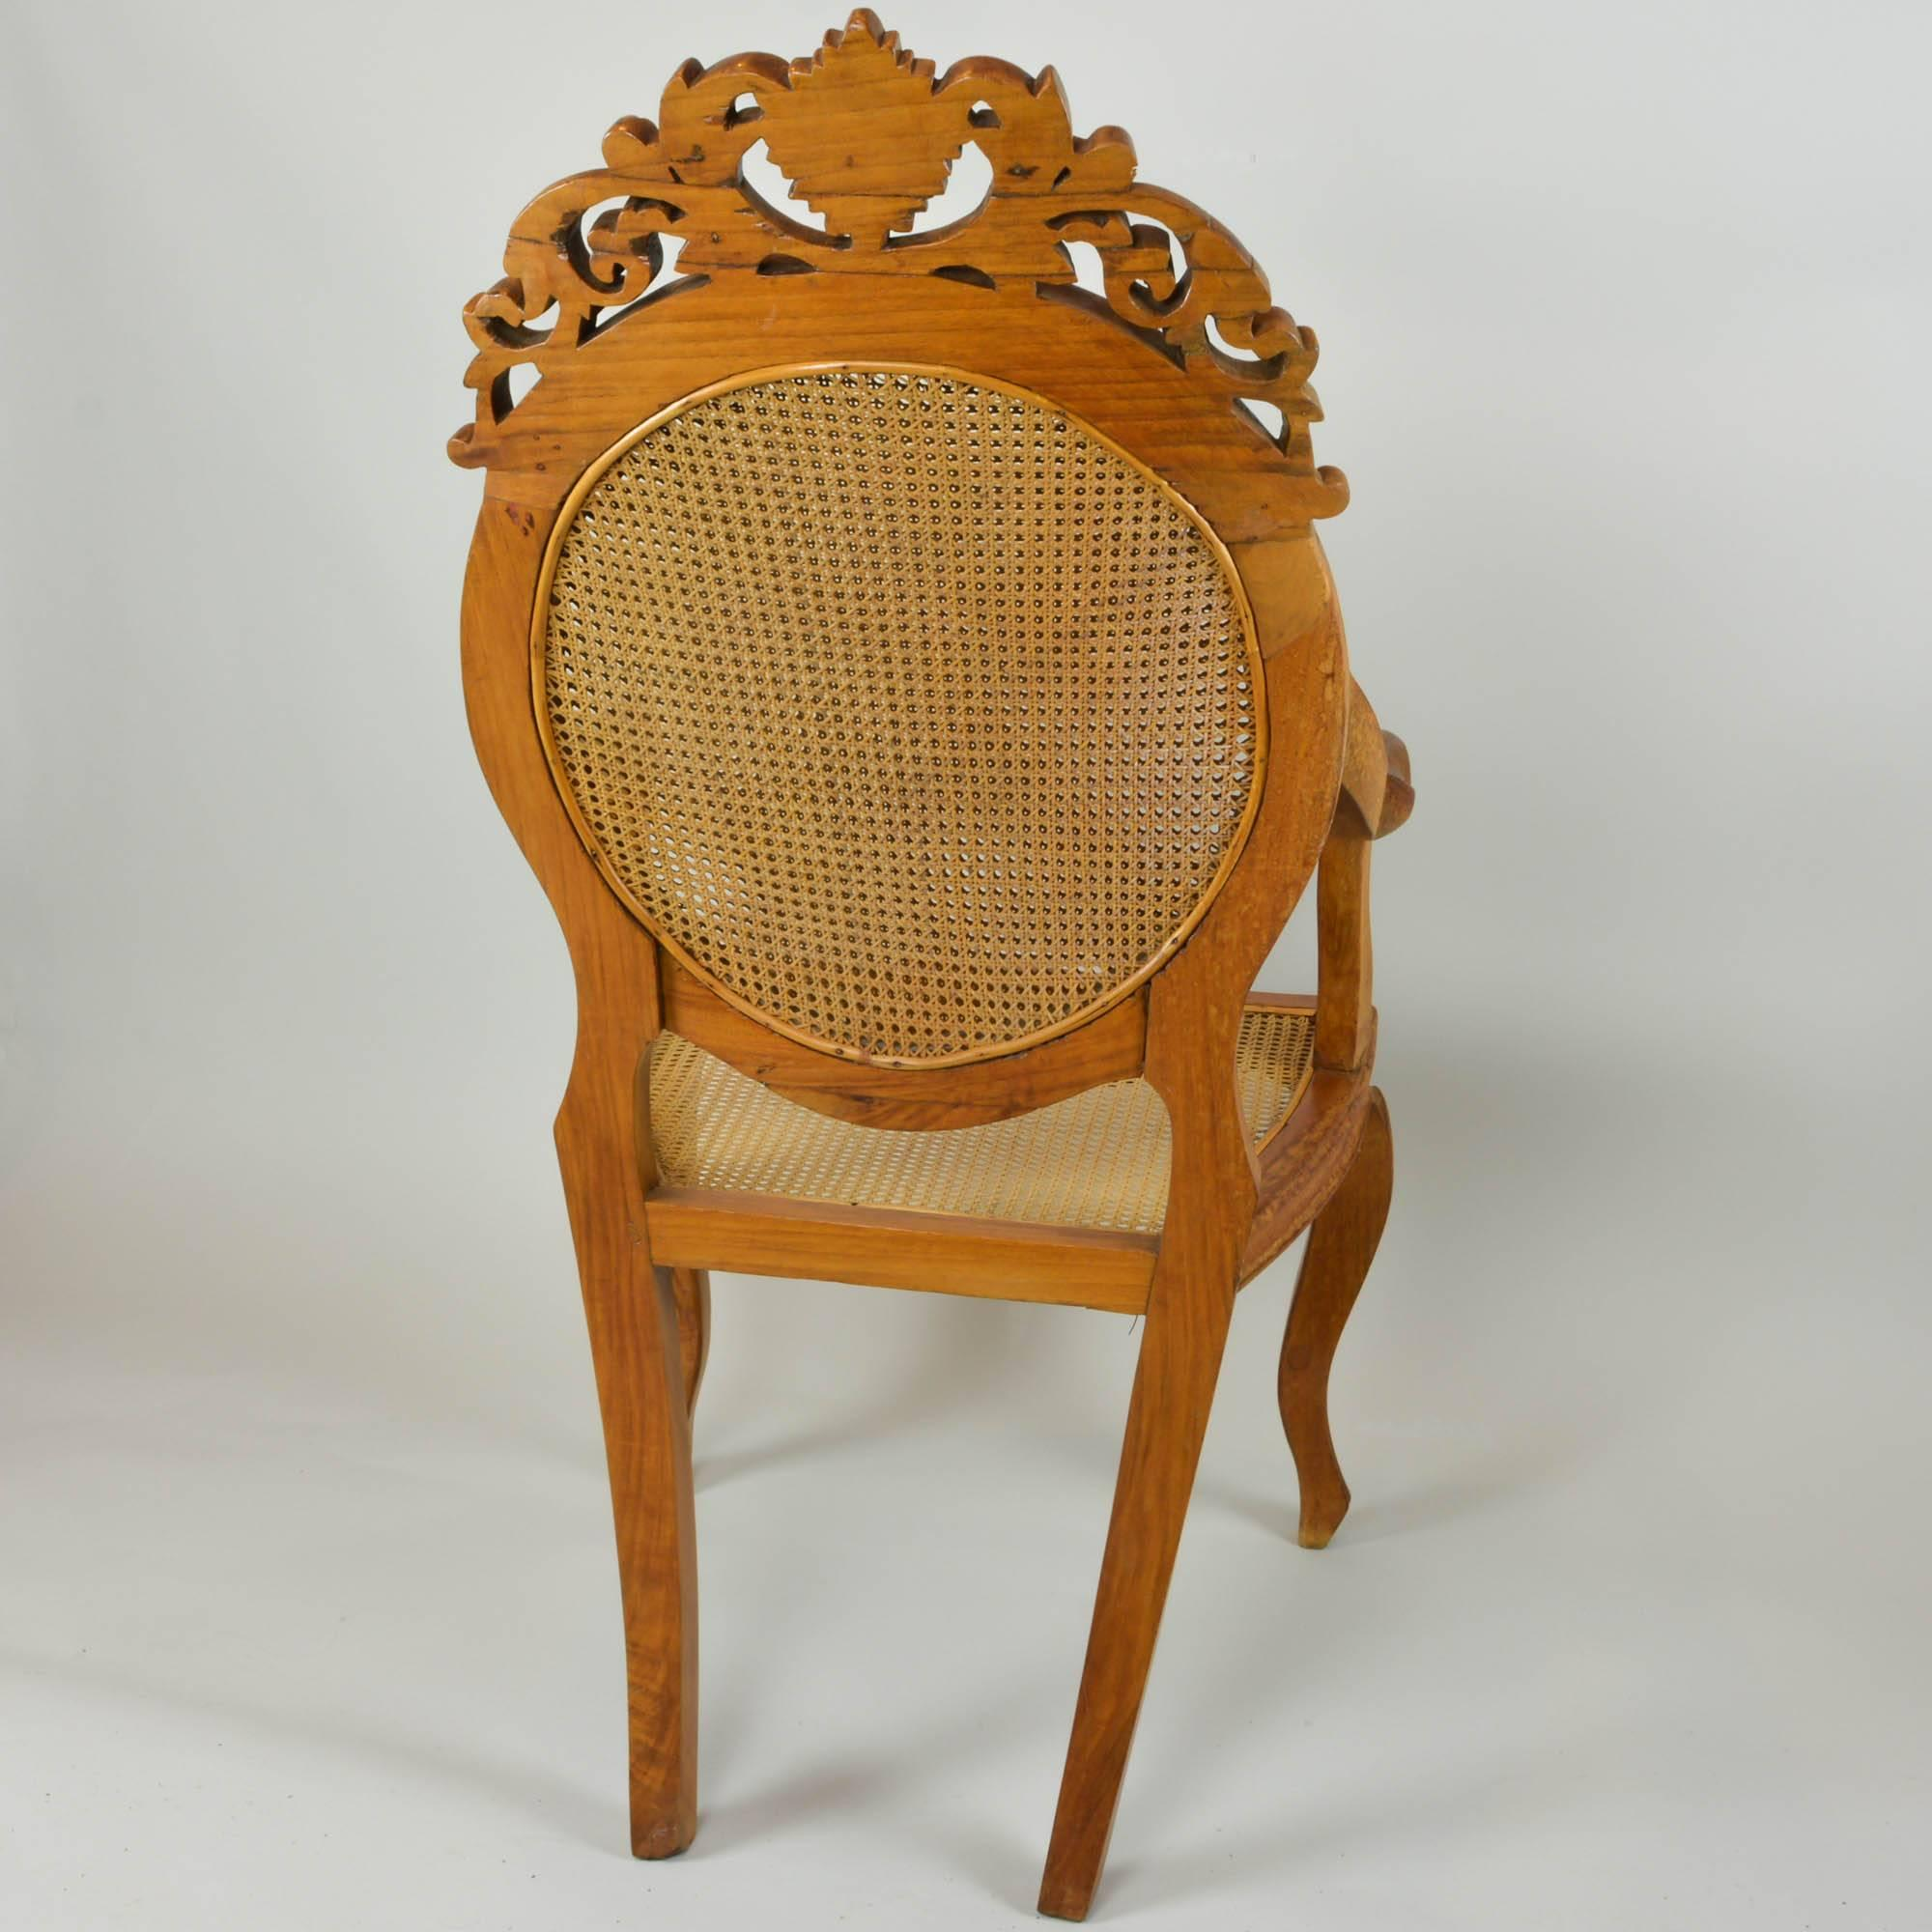 Vintage Accent Chair Vintage Carved Accent Chair With Caned Seat And Back